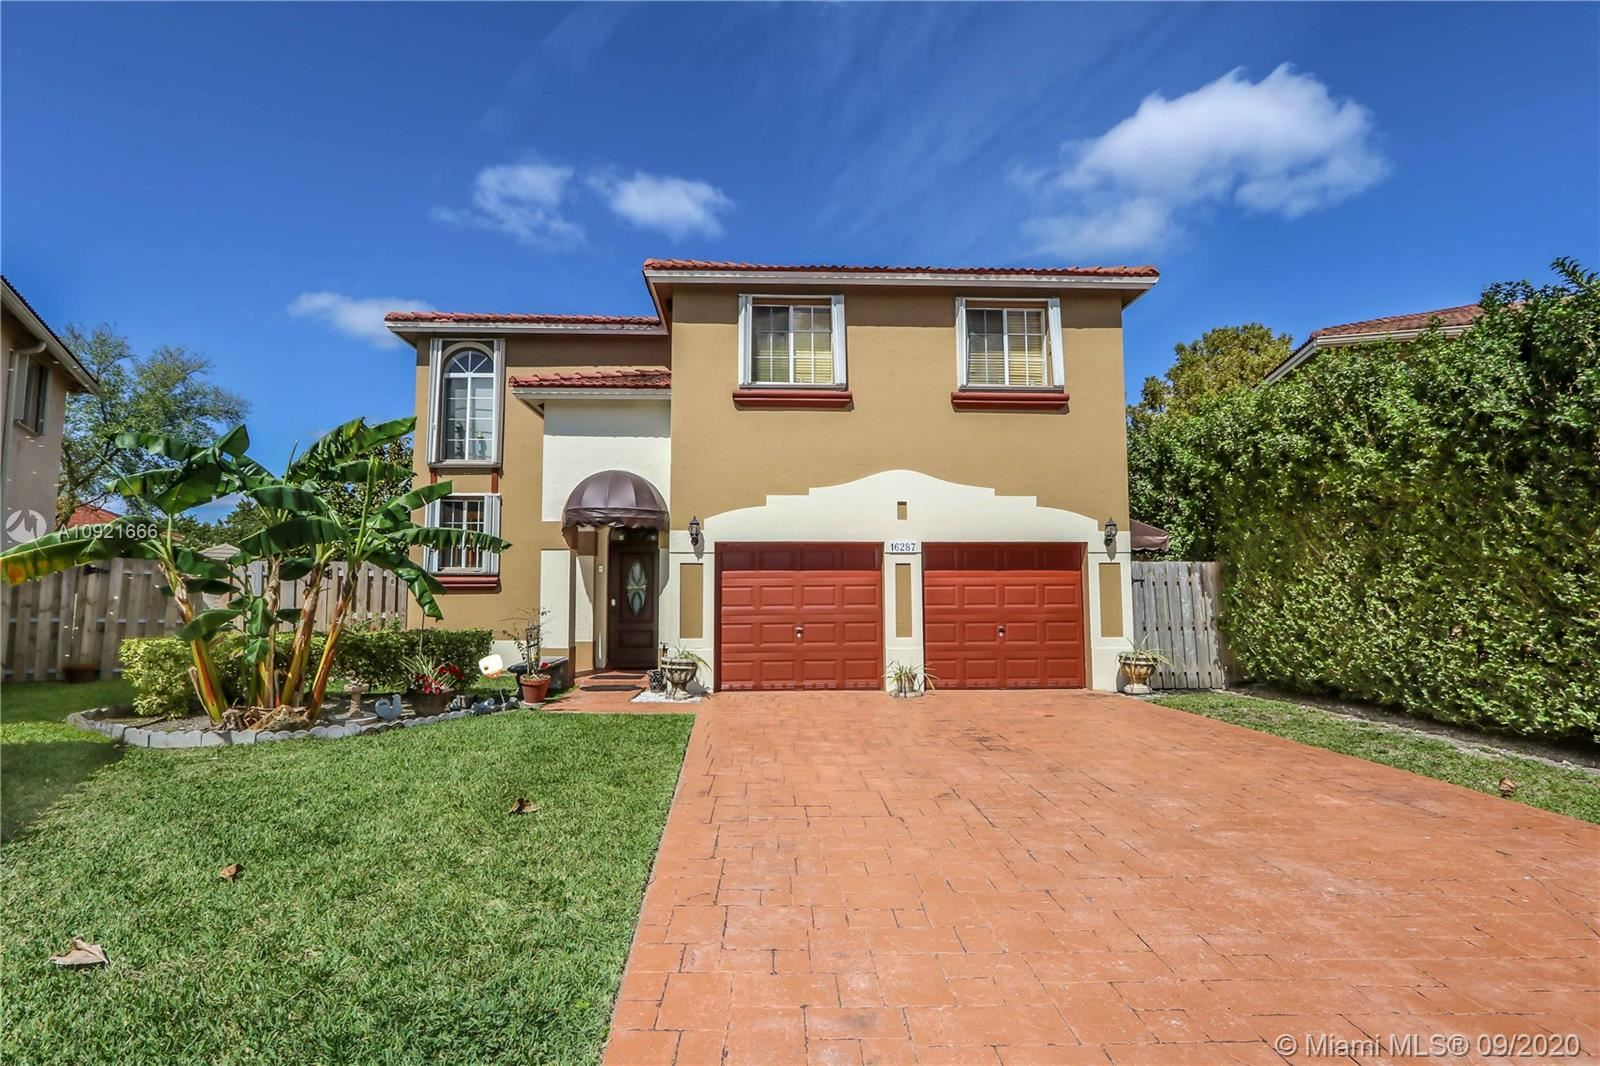 16287 SW 90th Ter, Miami, FL 33196 - #: A10921666